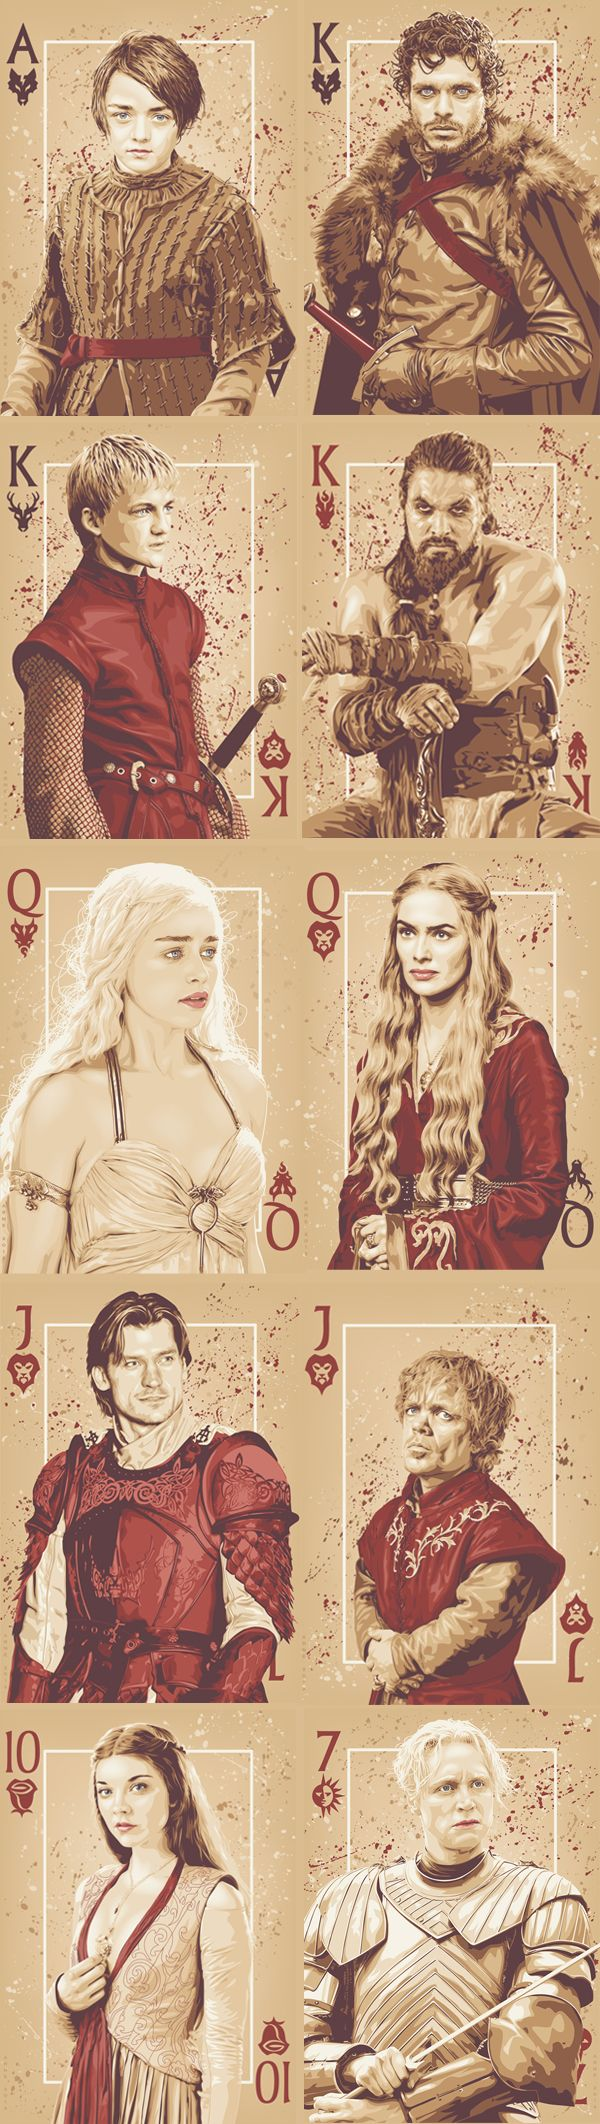 25 best ideas about jorah game of thrones on pinterest game of - Game Of Thrones Playing Cards